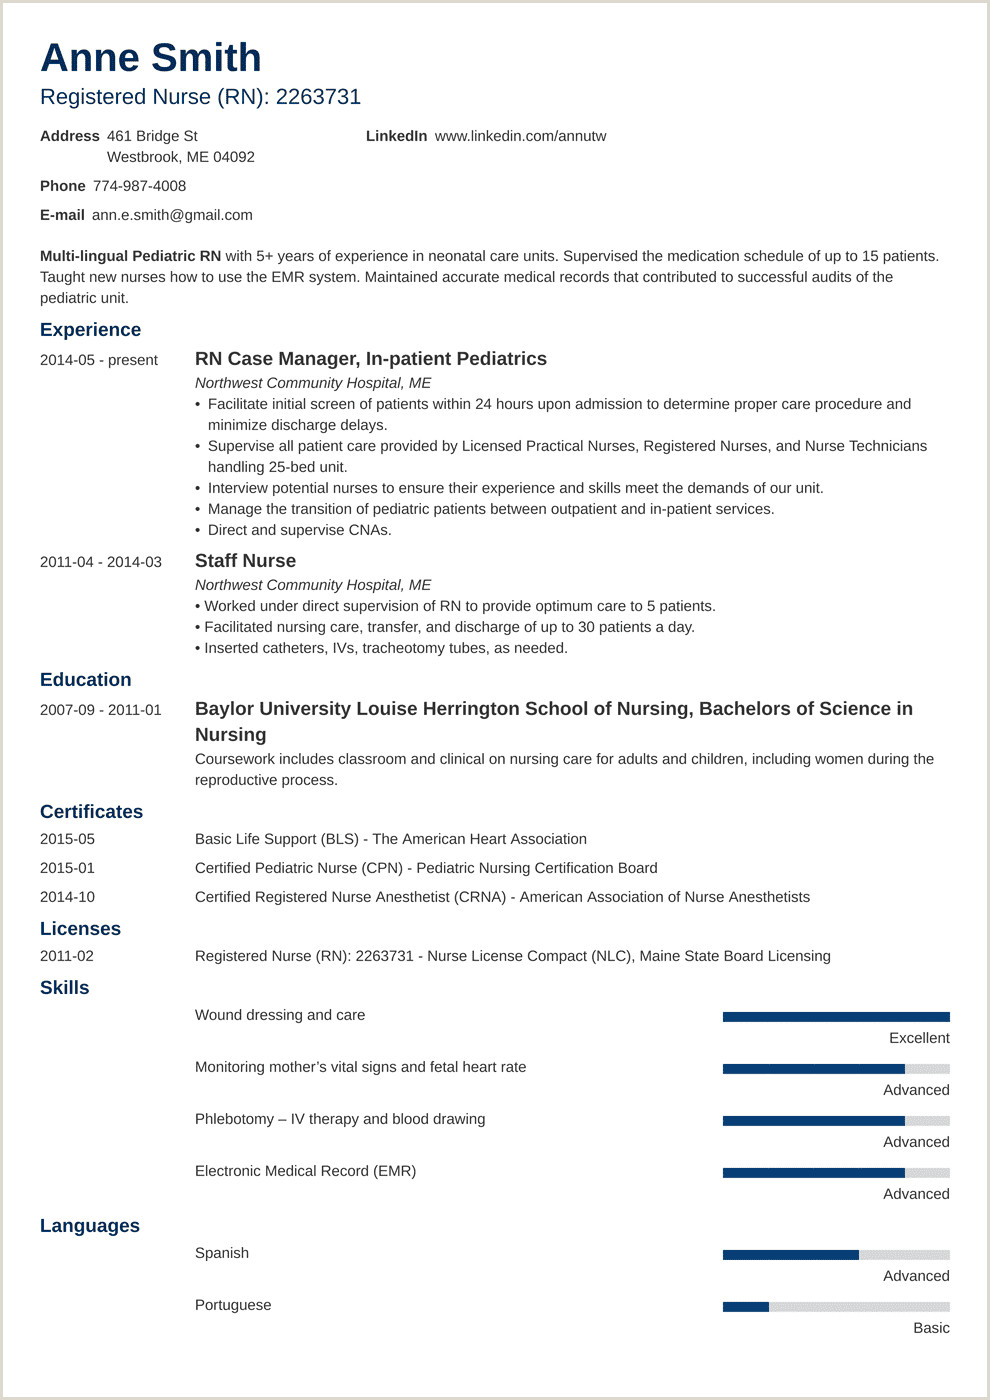 Resume Format For Nursing Job Free Download Nursing Resume Template & Guide [examples Of Experience